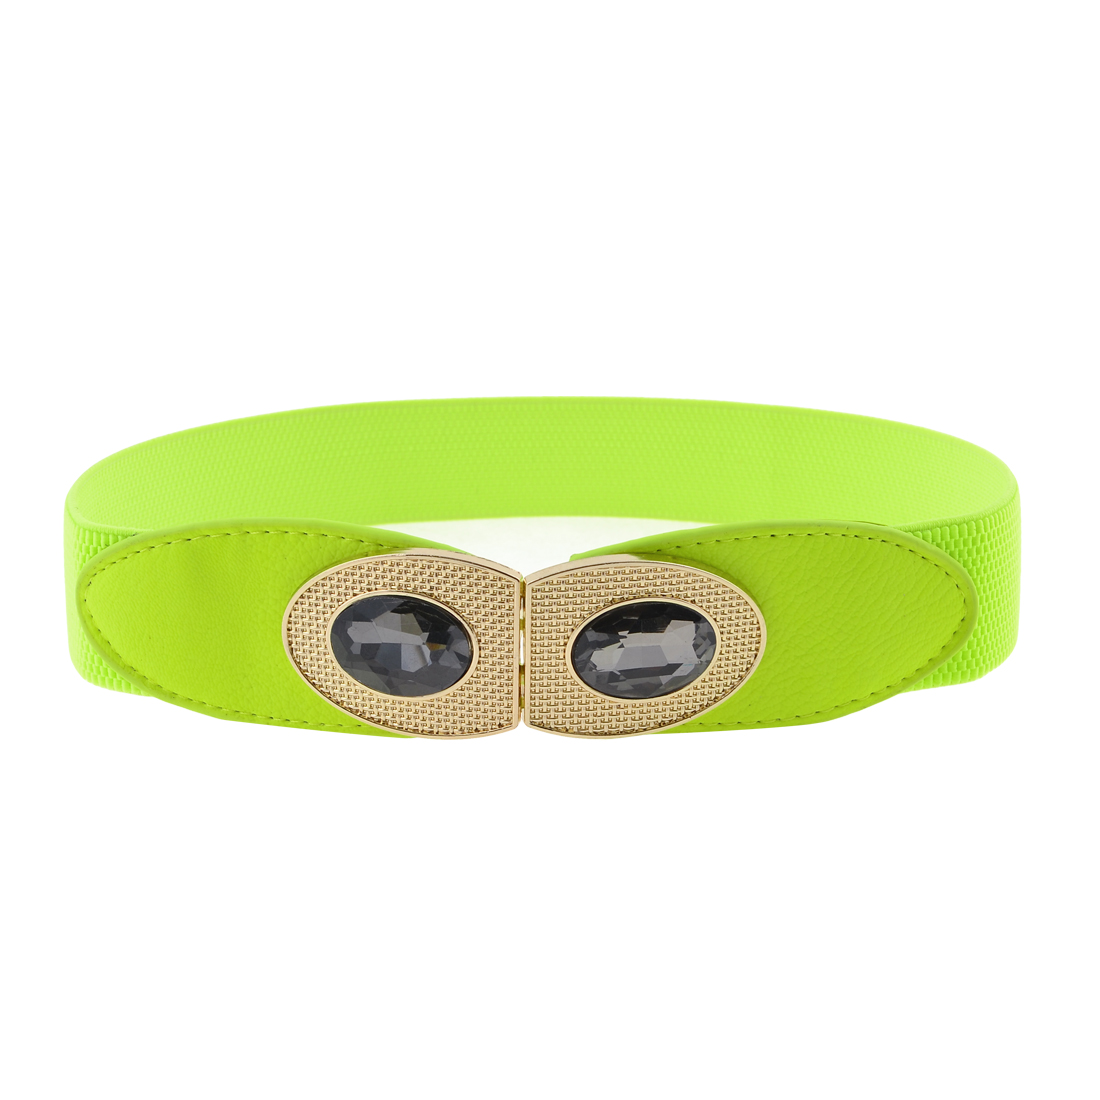 Lady Yellowgreen Eye Design Metal Buckle Stretchy Cinch Waist Belt